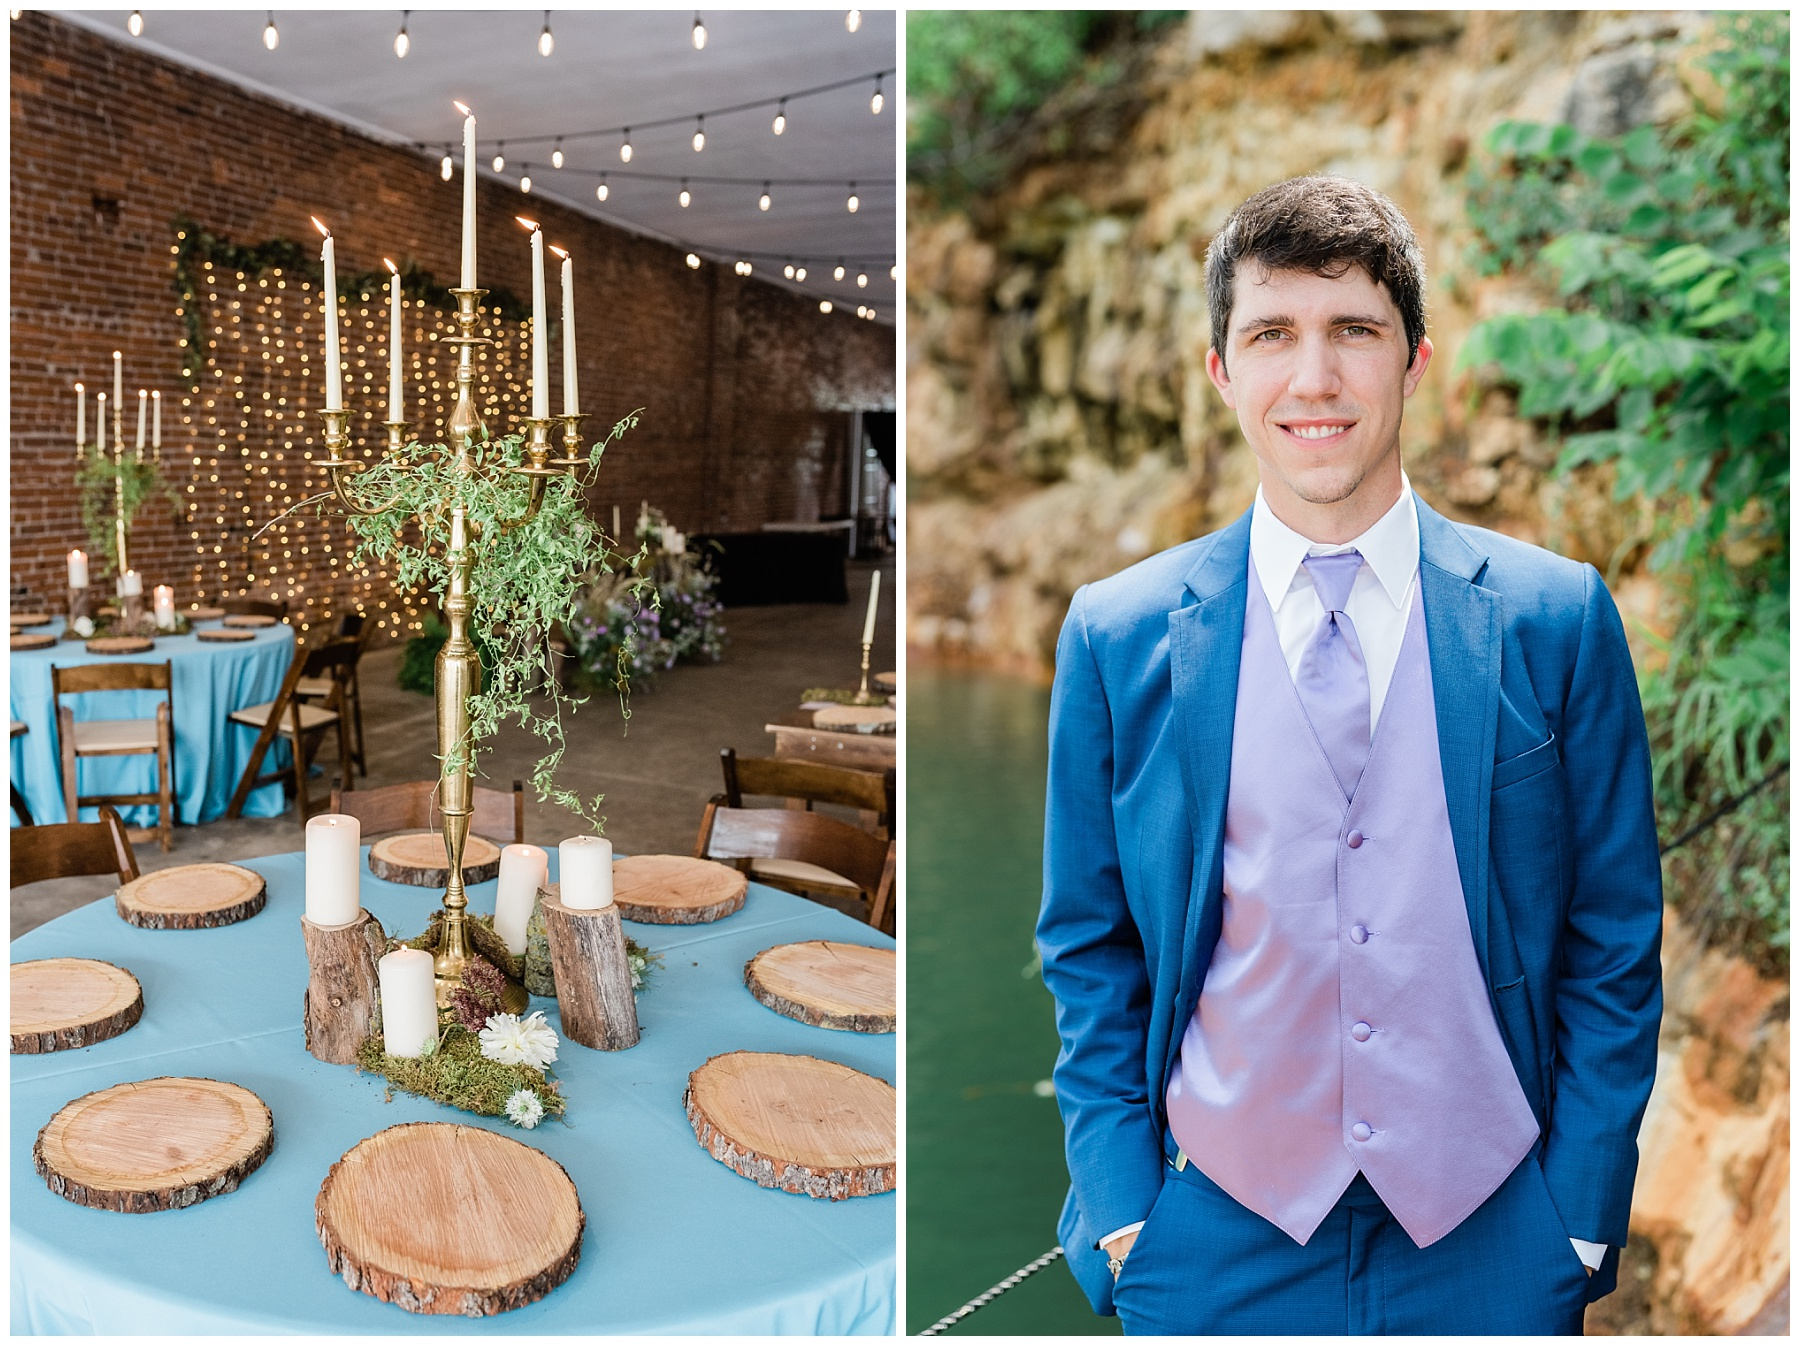 Intimate Mountain Hues Inspired Summer Wedding at Wildcliff Weddings and Events by Kelsi Kliethermes Photography Best Missouri and Maui Wedding Photographer_0048.jpg